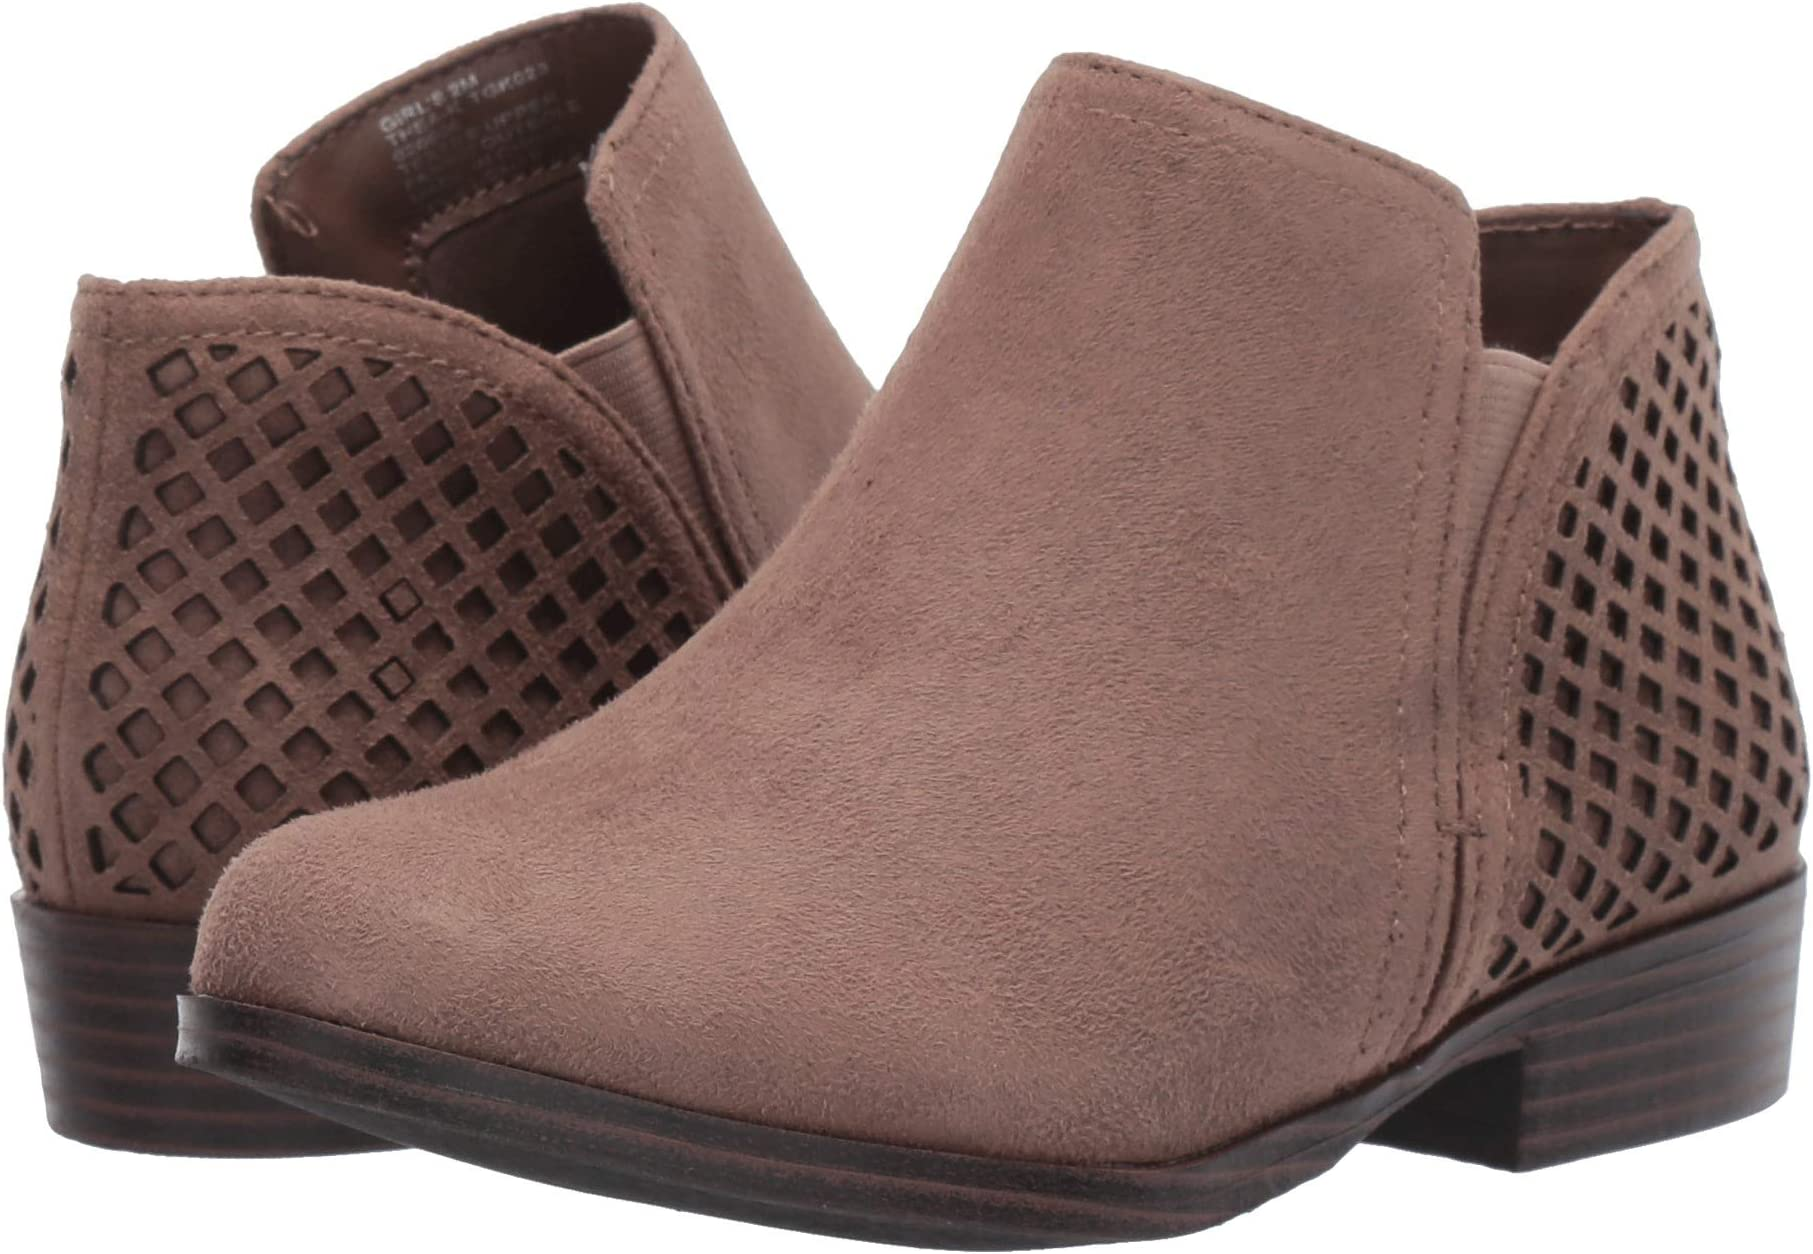 Christmas Shoes For Girls.Girls Shoes Zappos Com